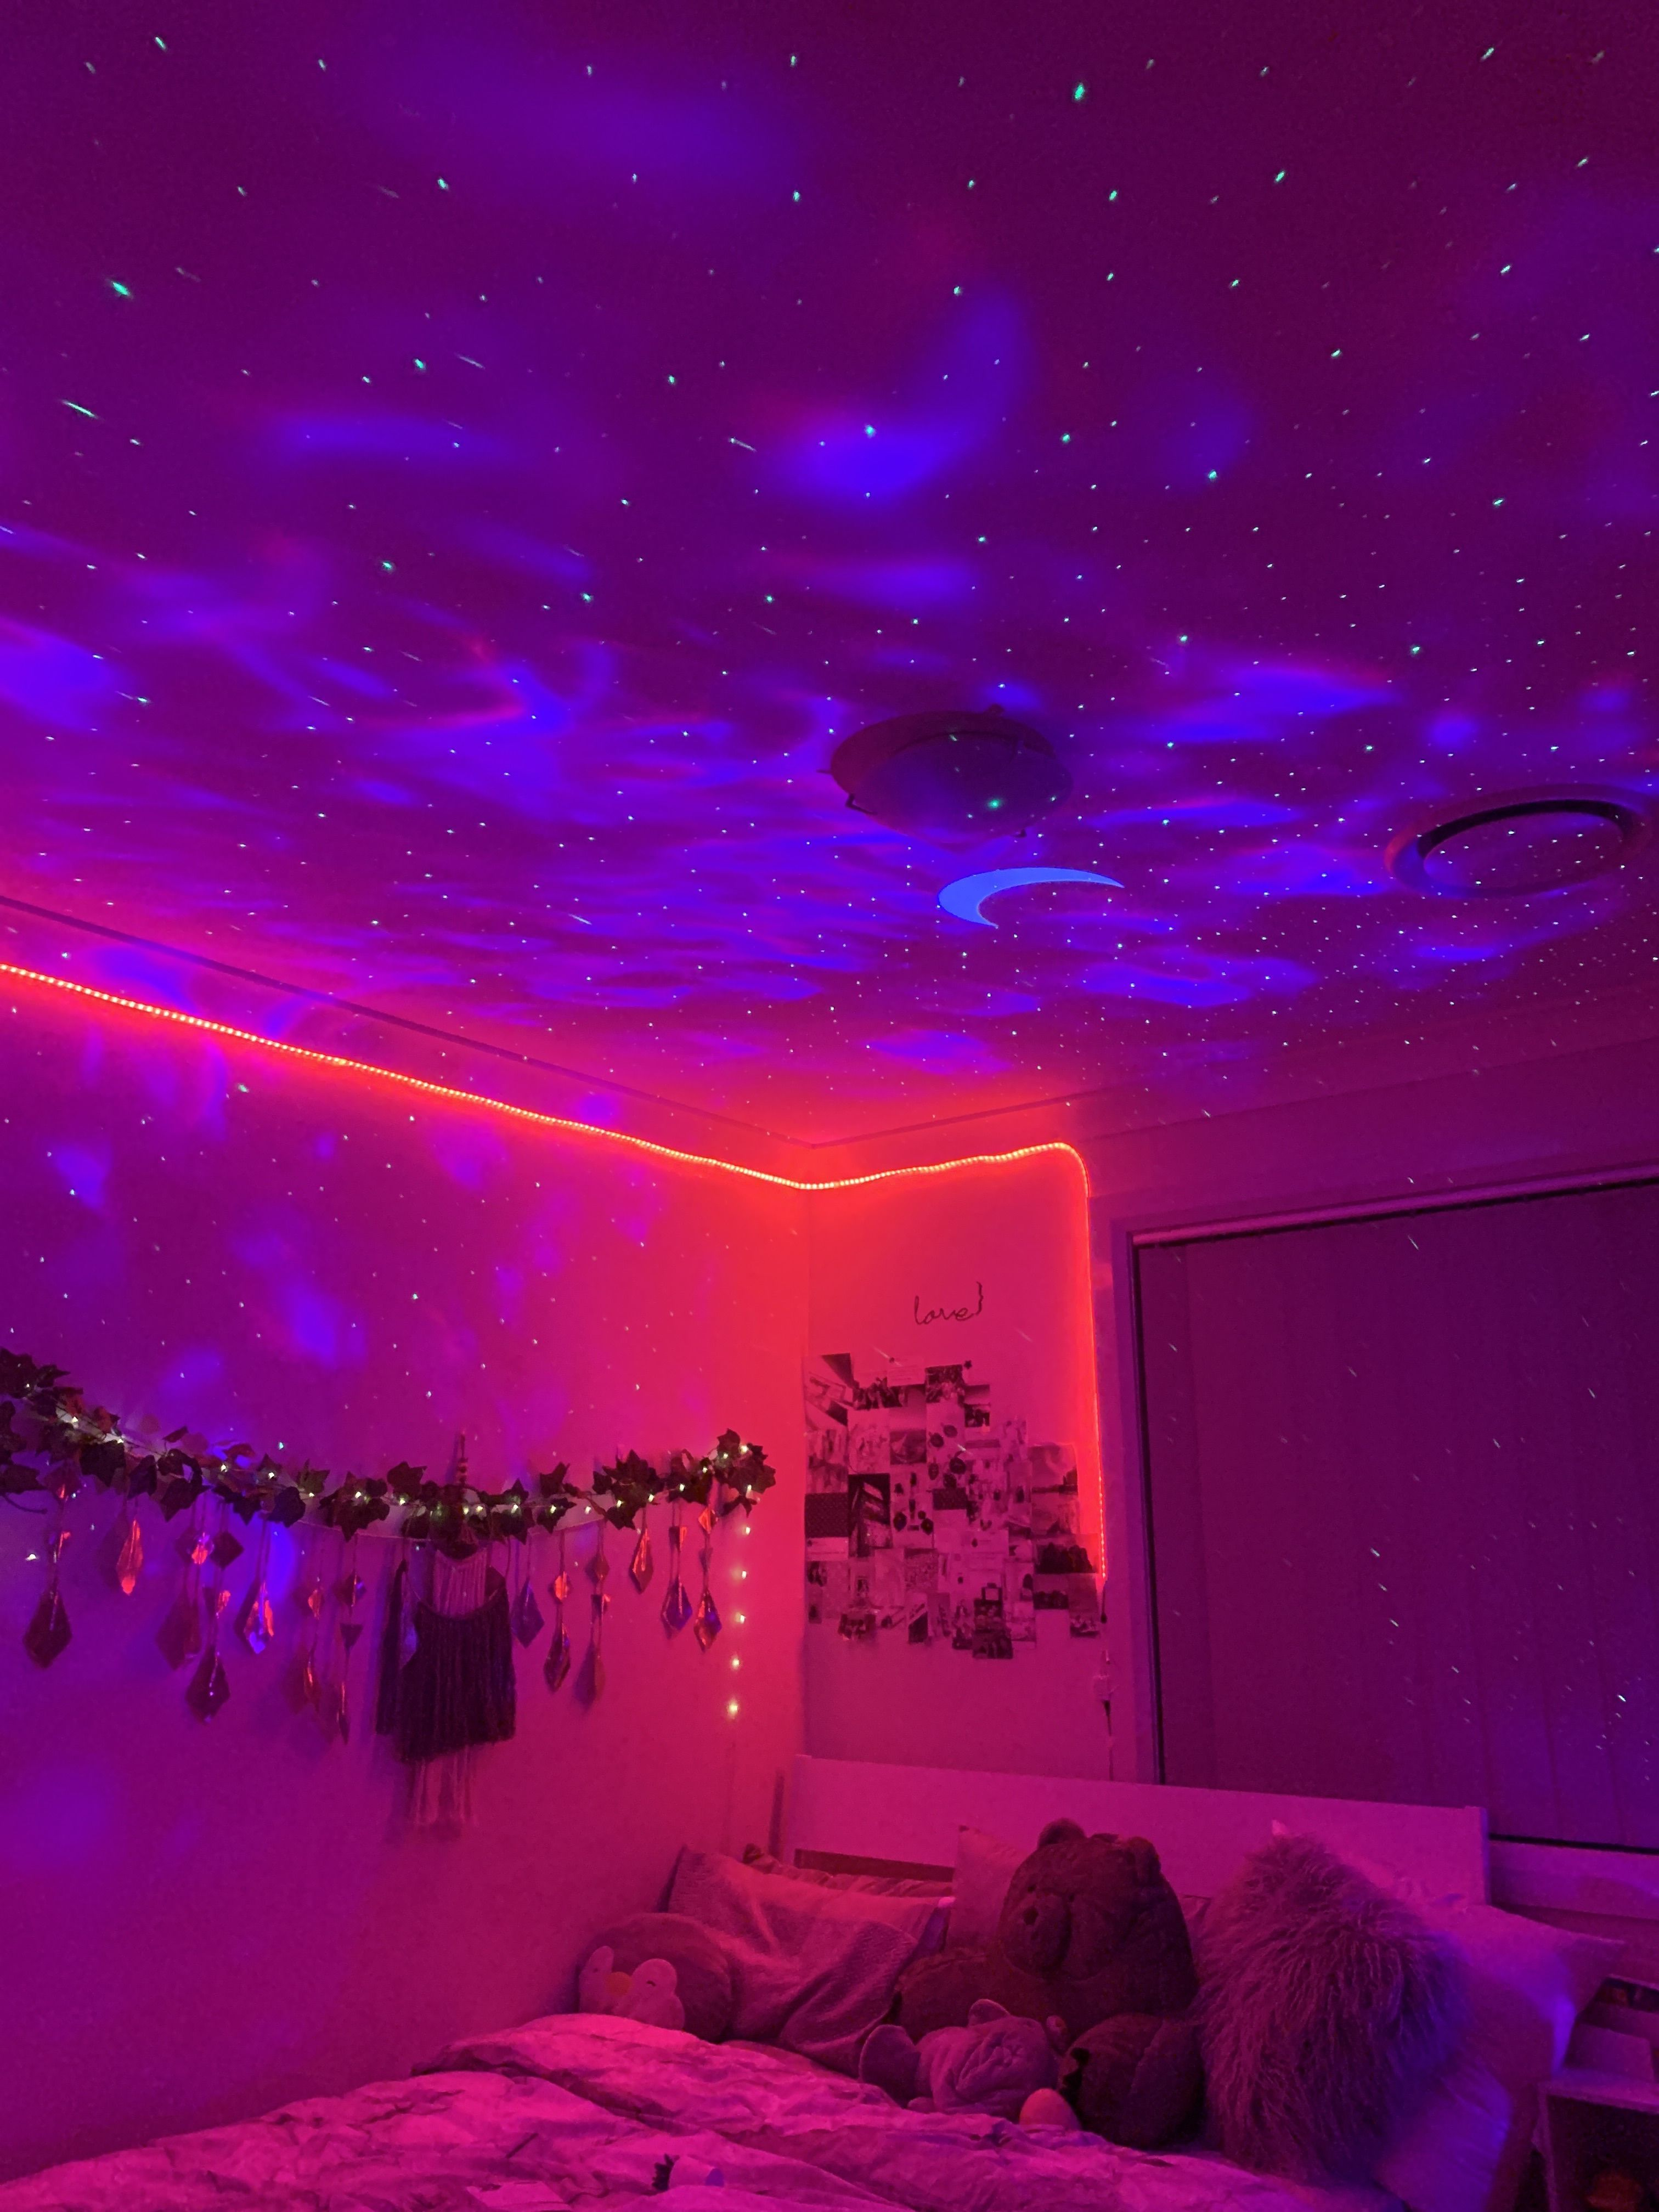 Transform your bedroom into a galactic oasis